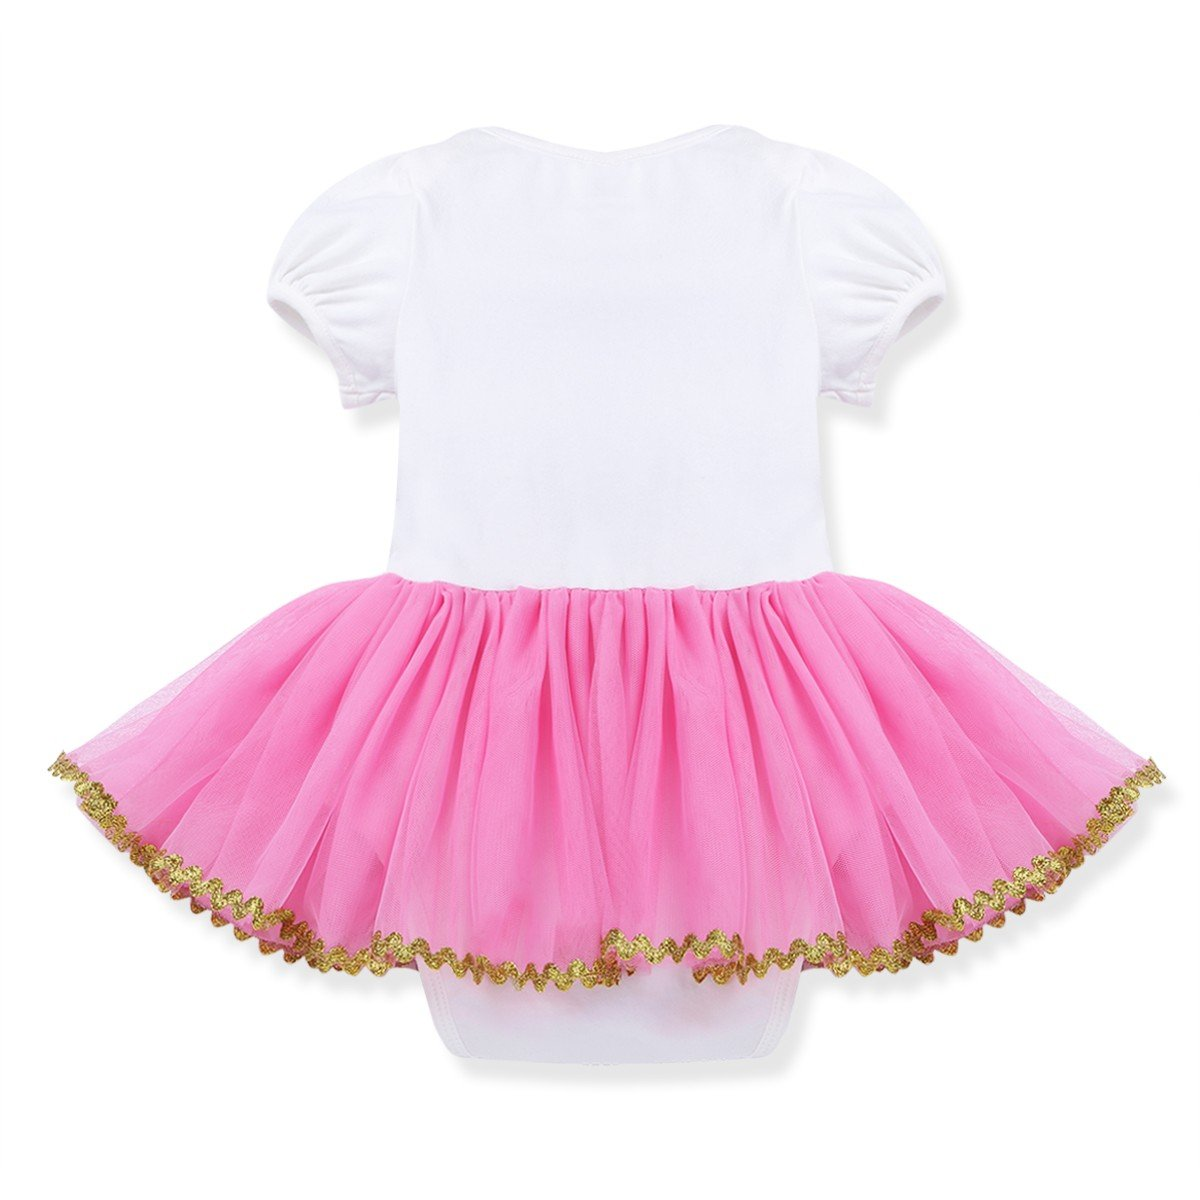 FEESHOW Infant Baby Girls Shiny One First//1st Birthday Outfit Tutu Romper Dress